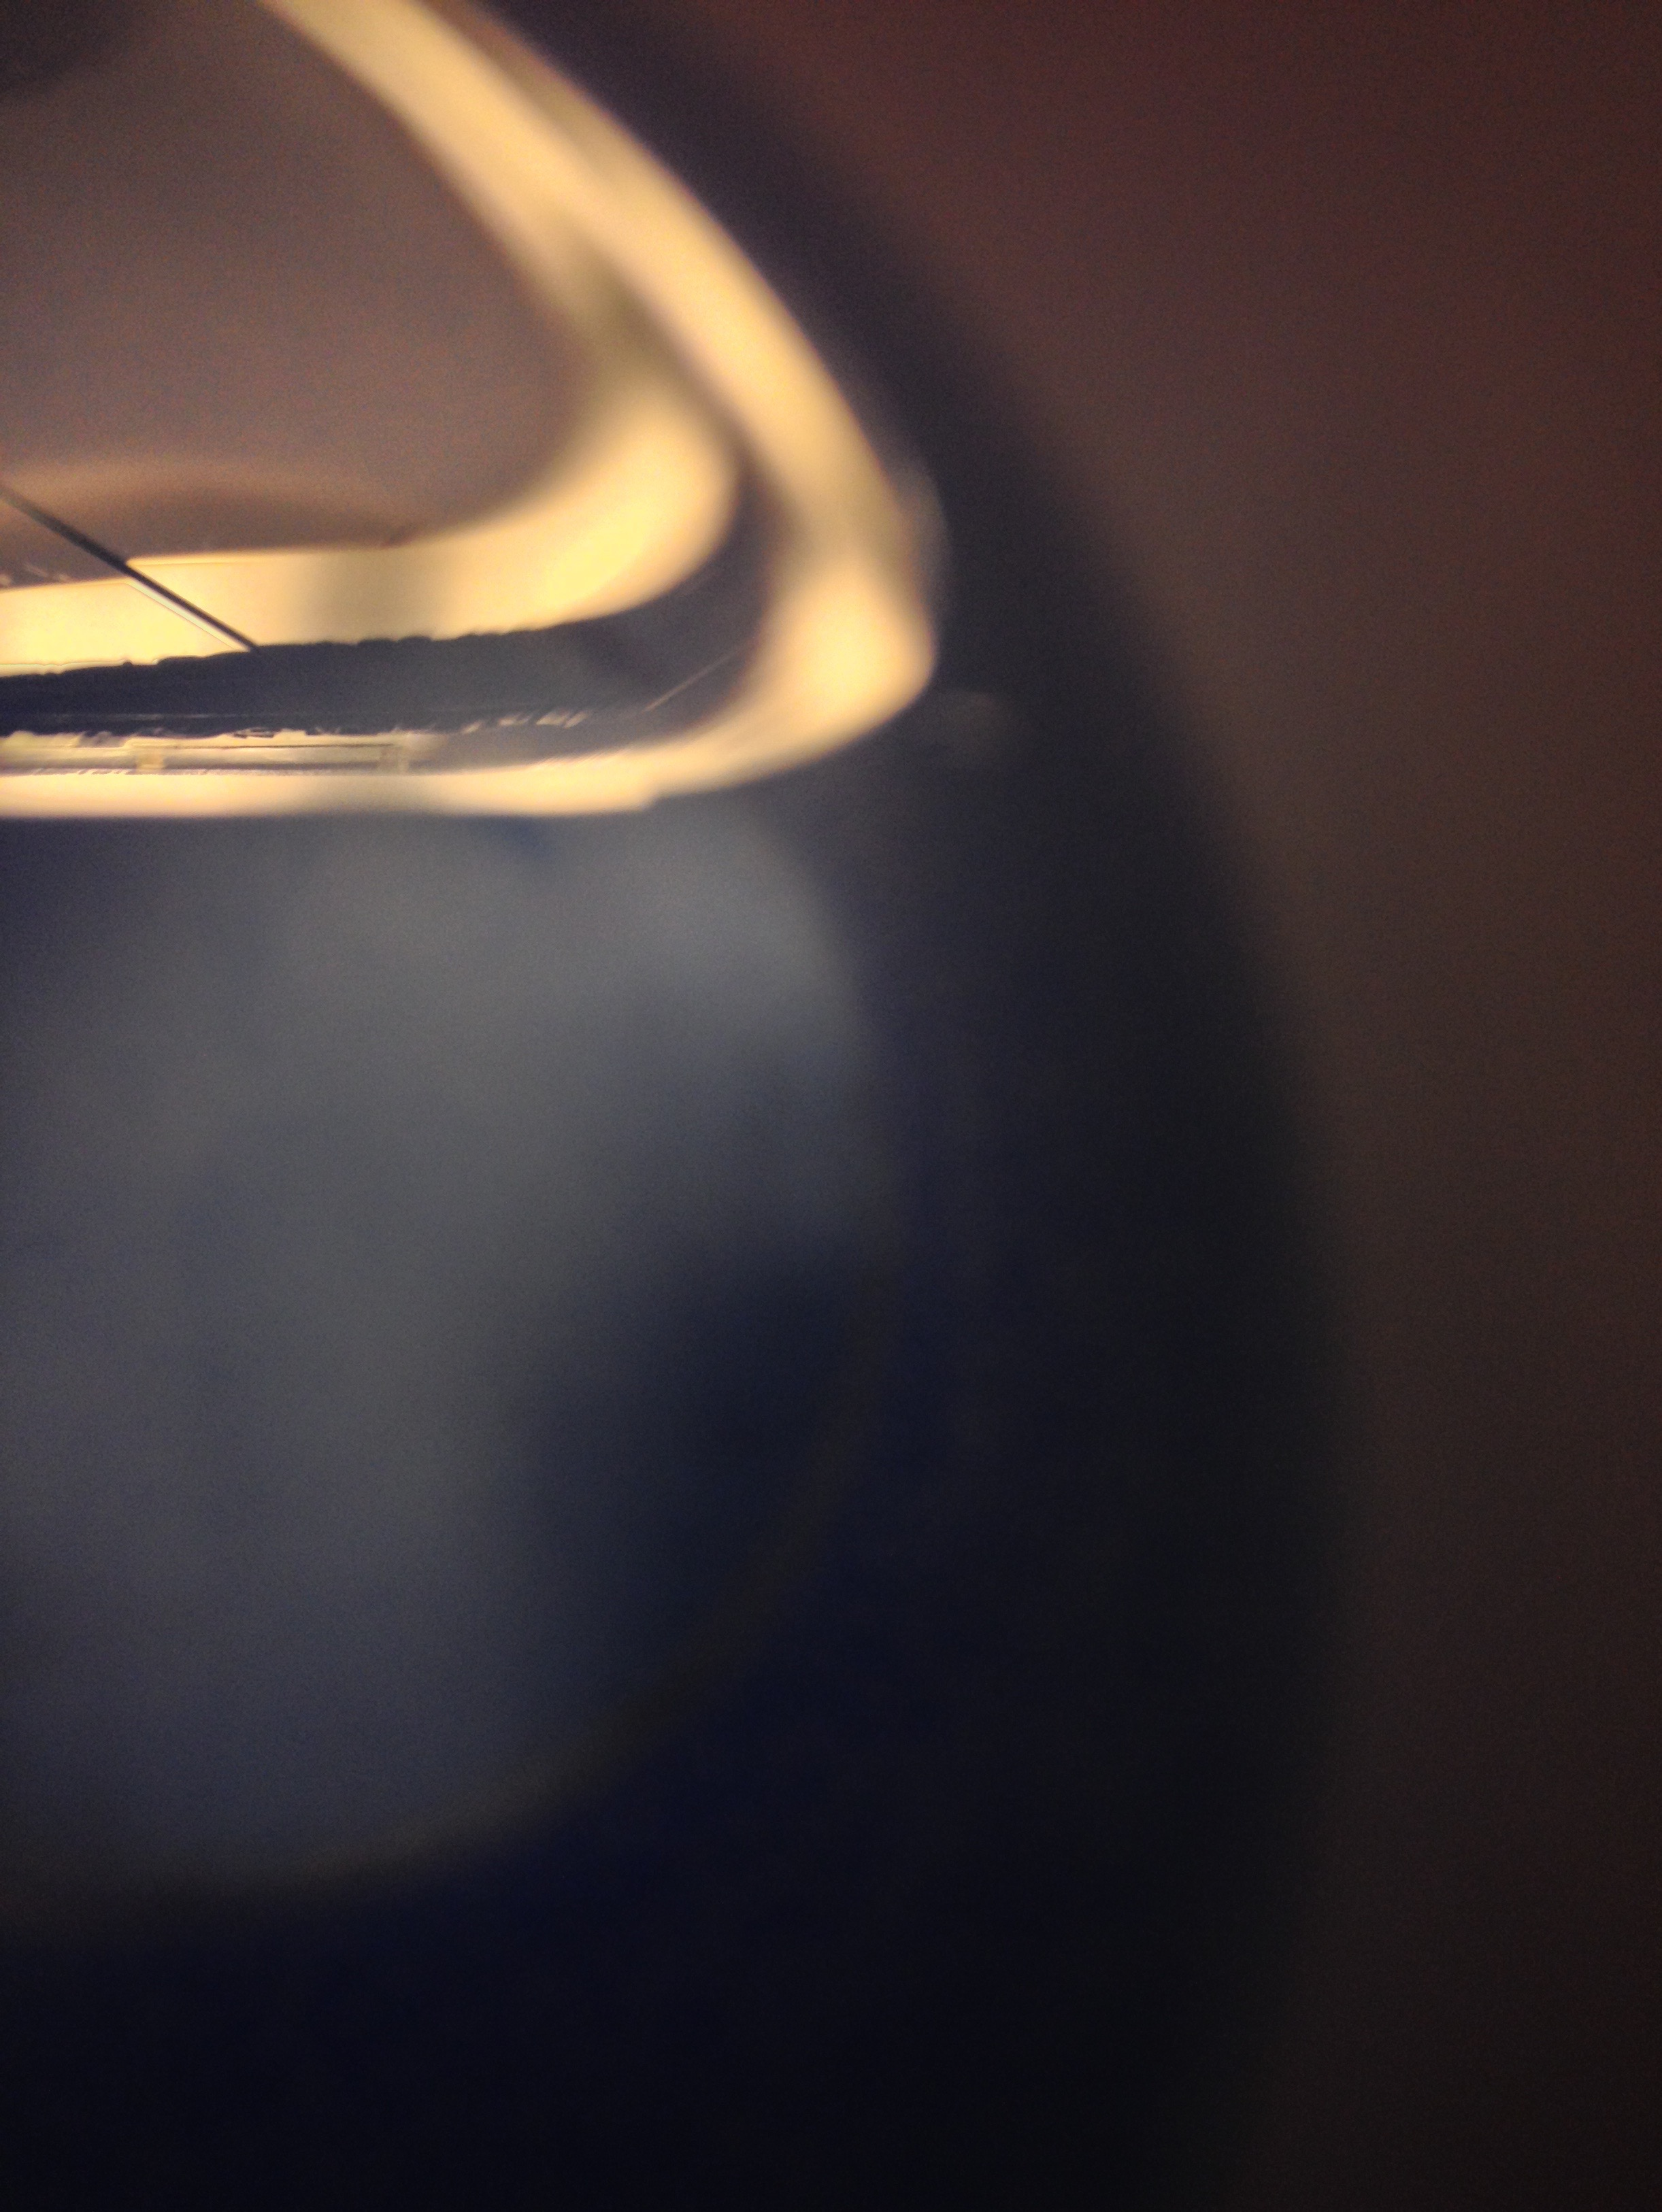 Light on a Drinking Cup